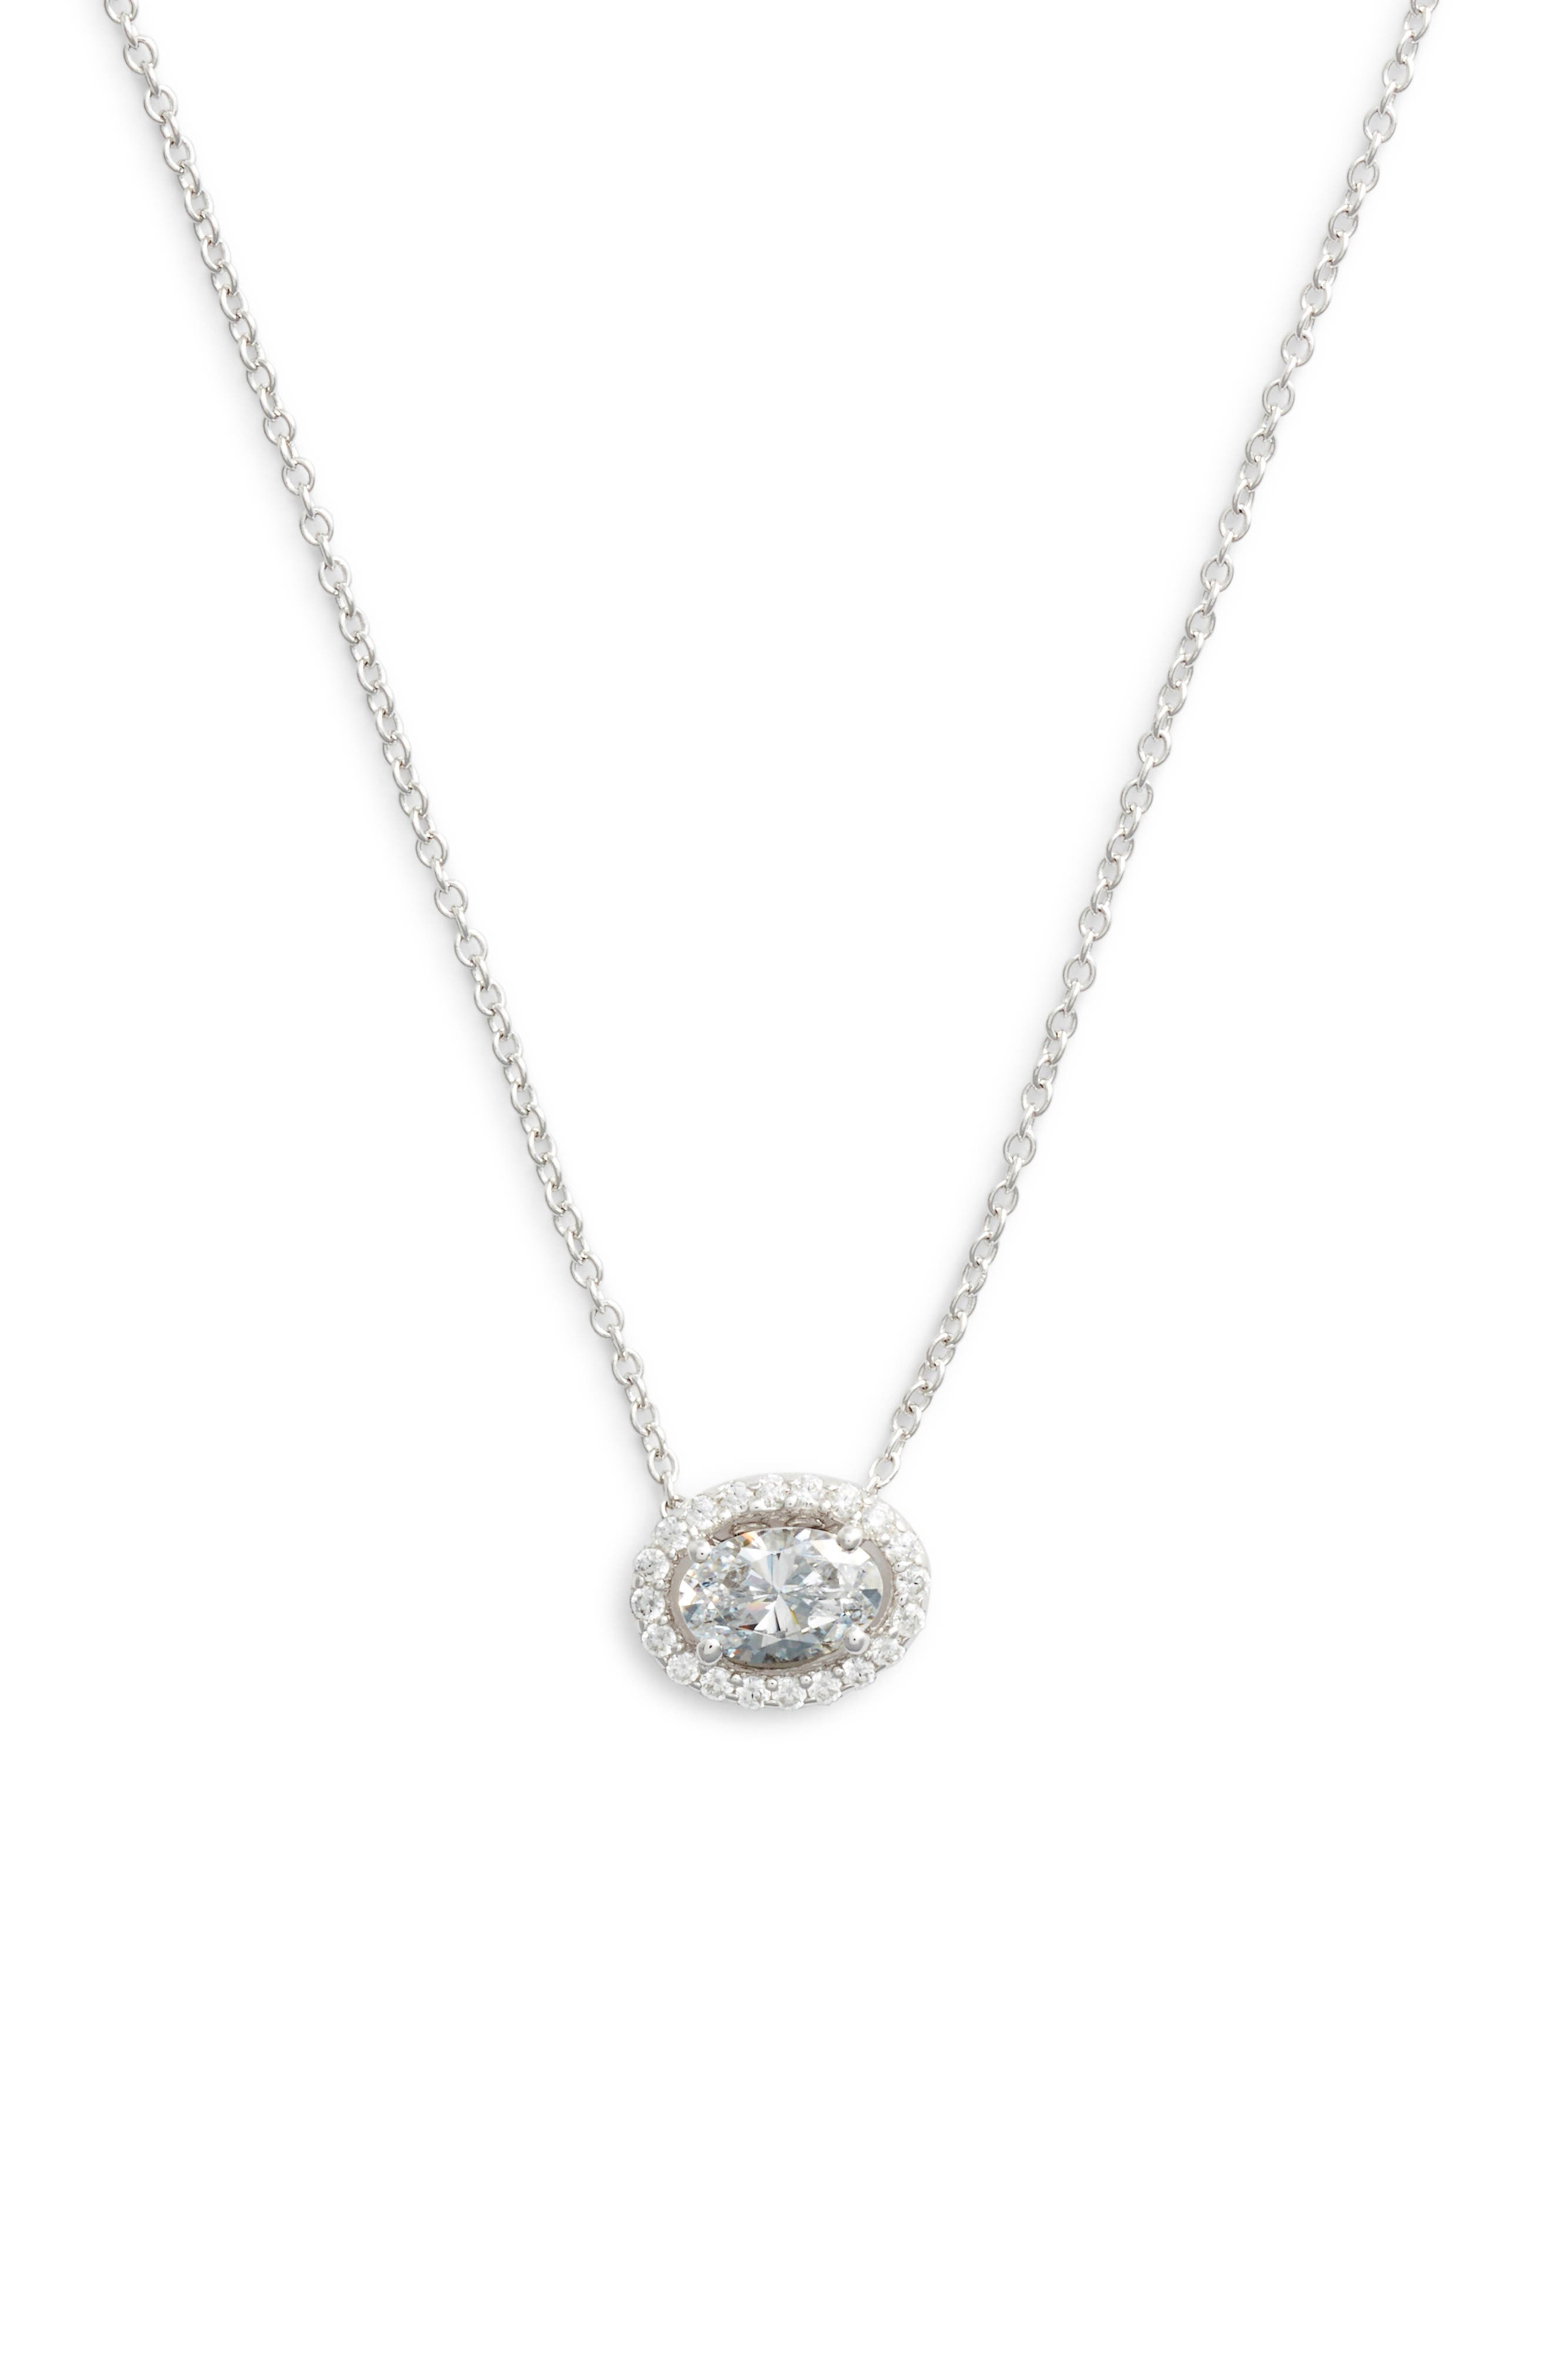 Oval Halo Necklace,                         Main,                         color, Silver/ Clear